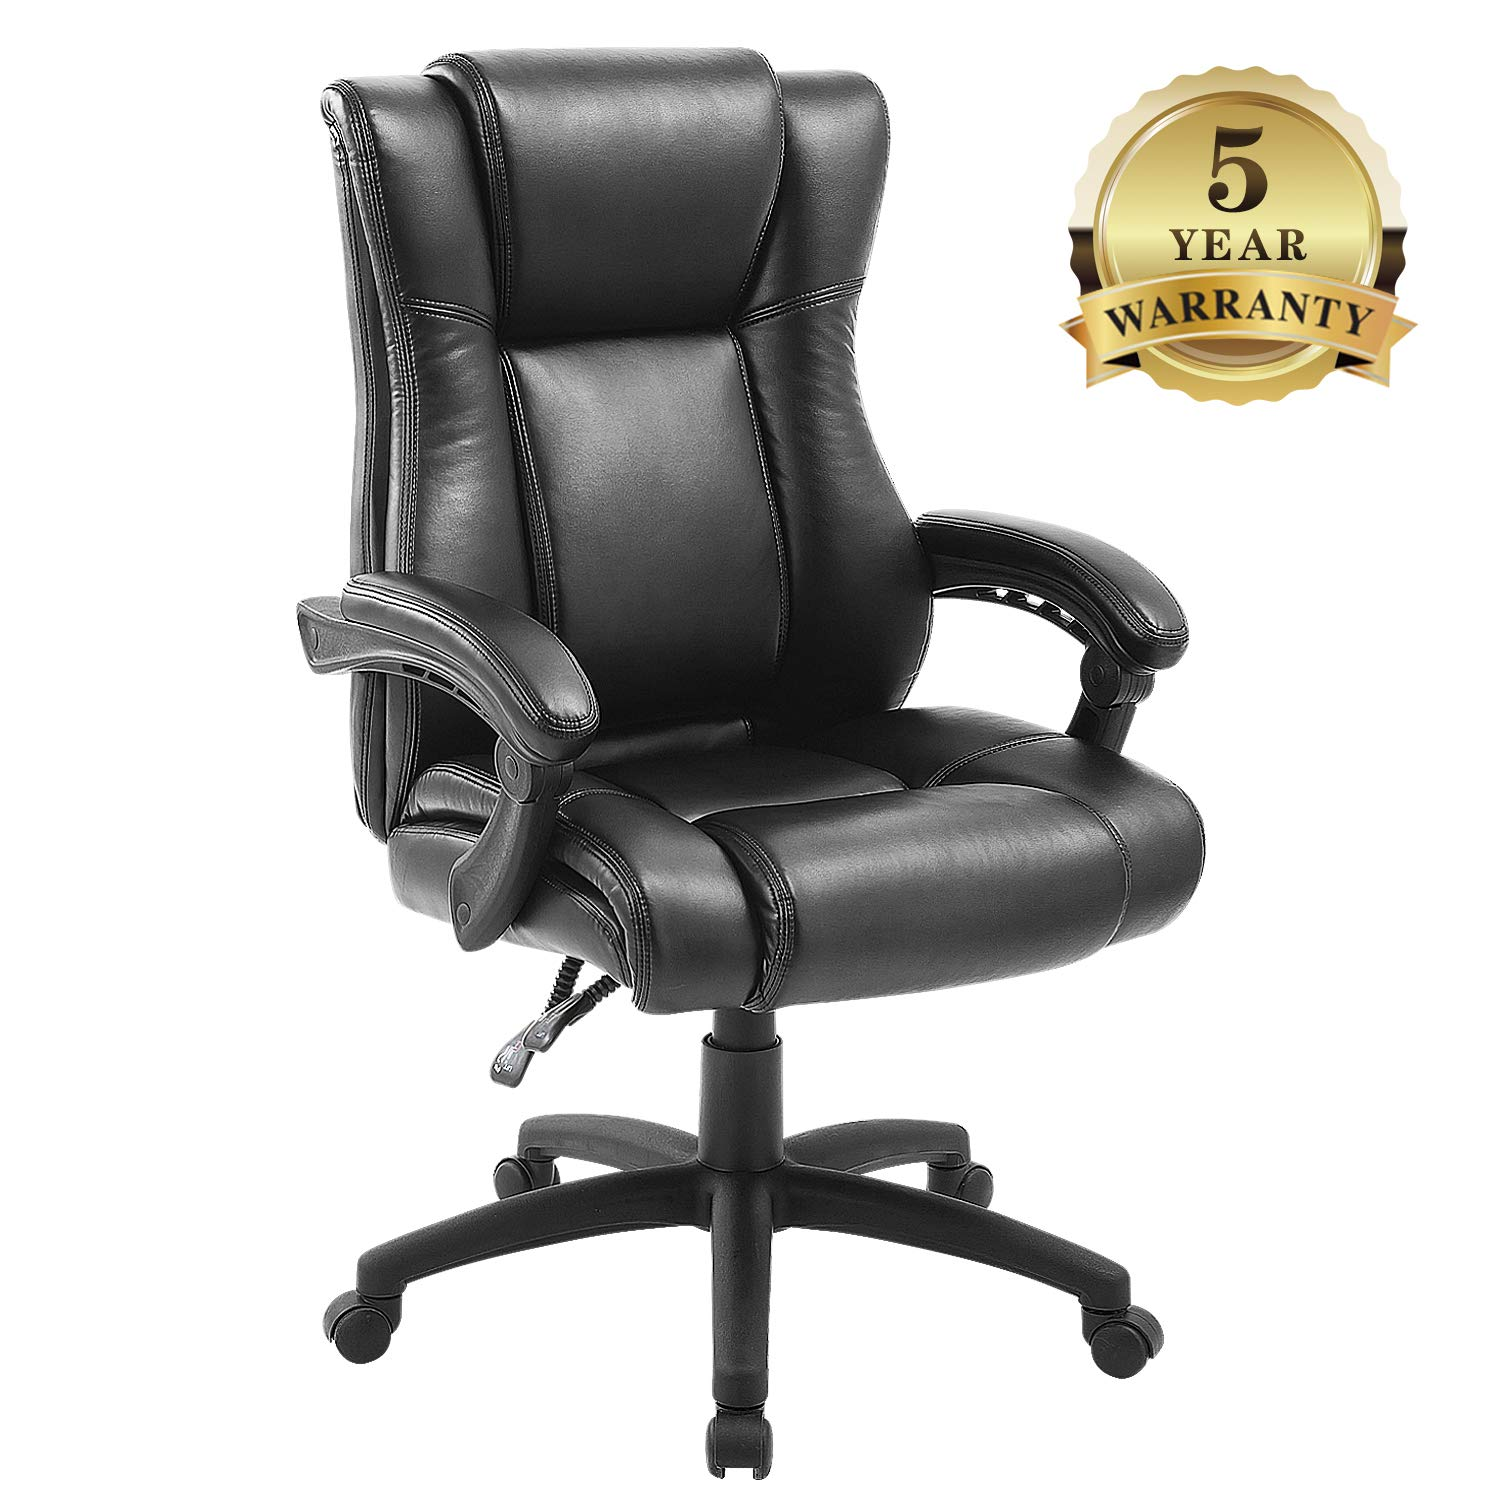 Executive Office Chair with Black Leather, Swivel Managerial Desk Chair with Heavy Duty Padded, Ergonomic Computer Gaming Chair with Adjustable Seat and Backrest